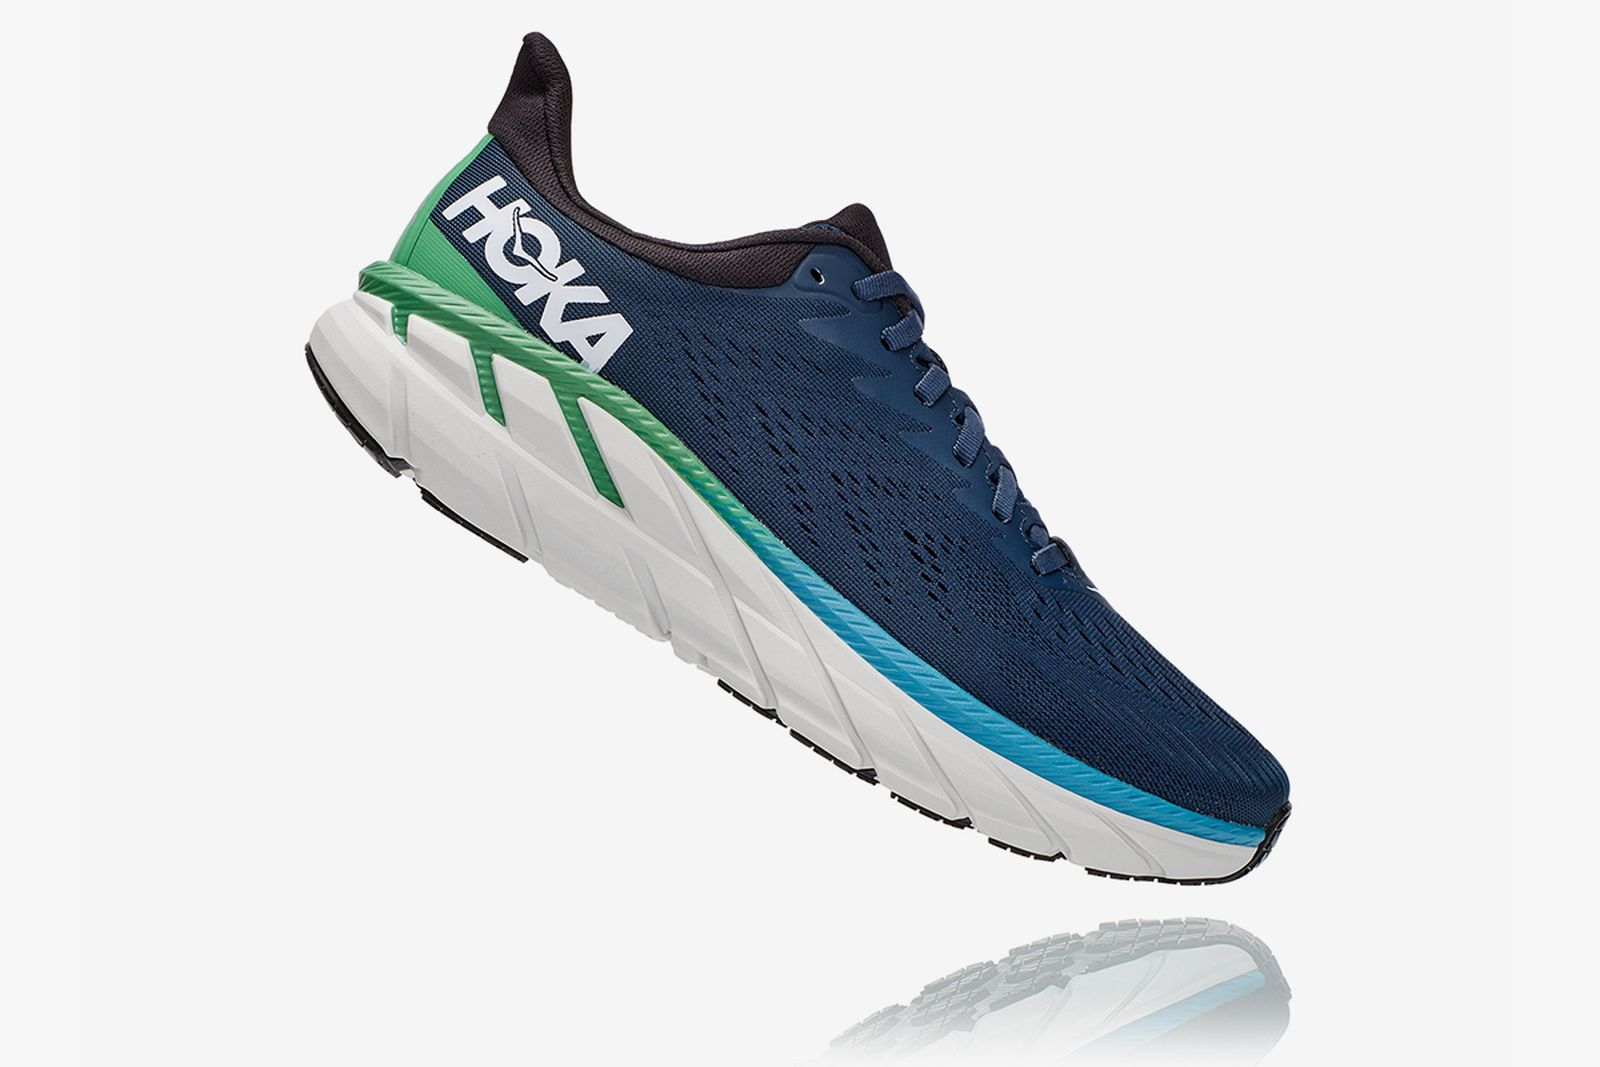 hoka one one clifton 7 product shots